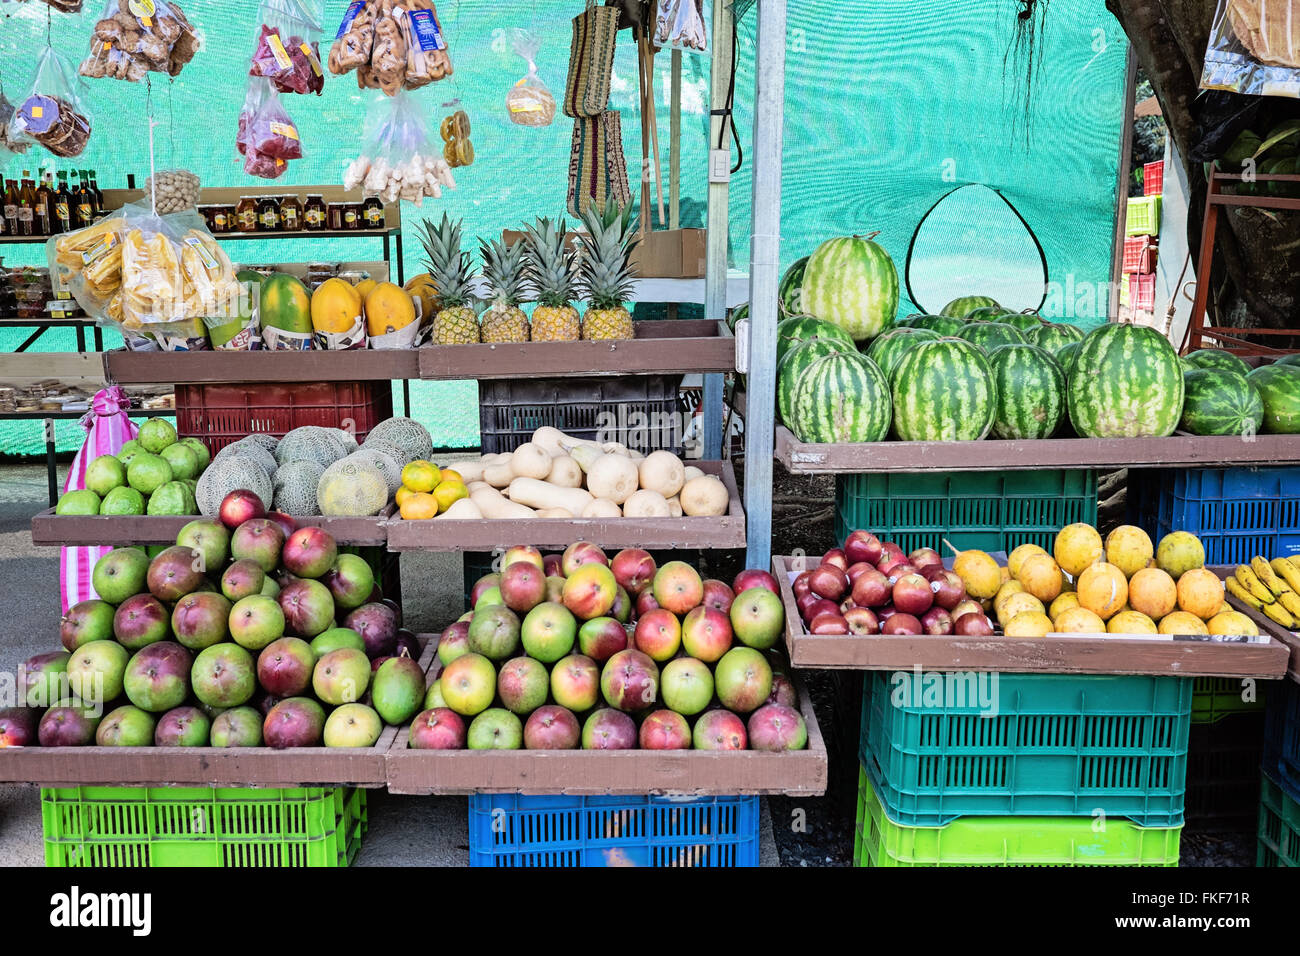 Fruit stand in Costa Rica - Stock Image